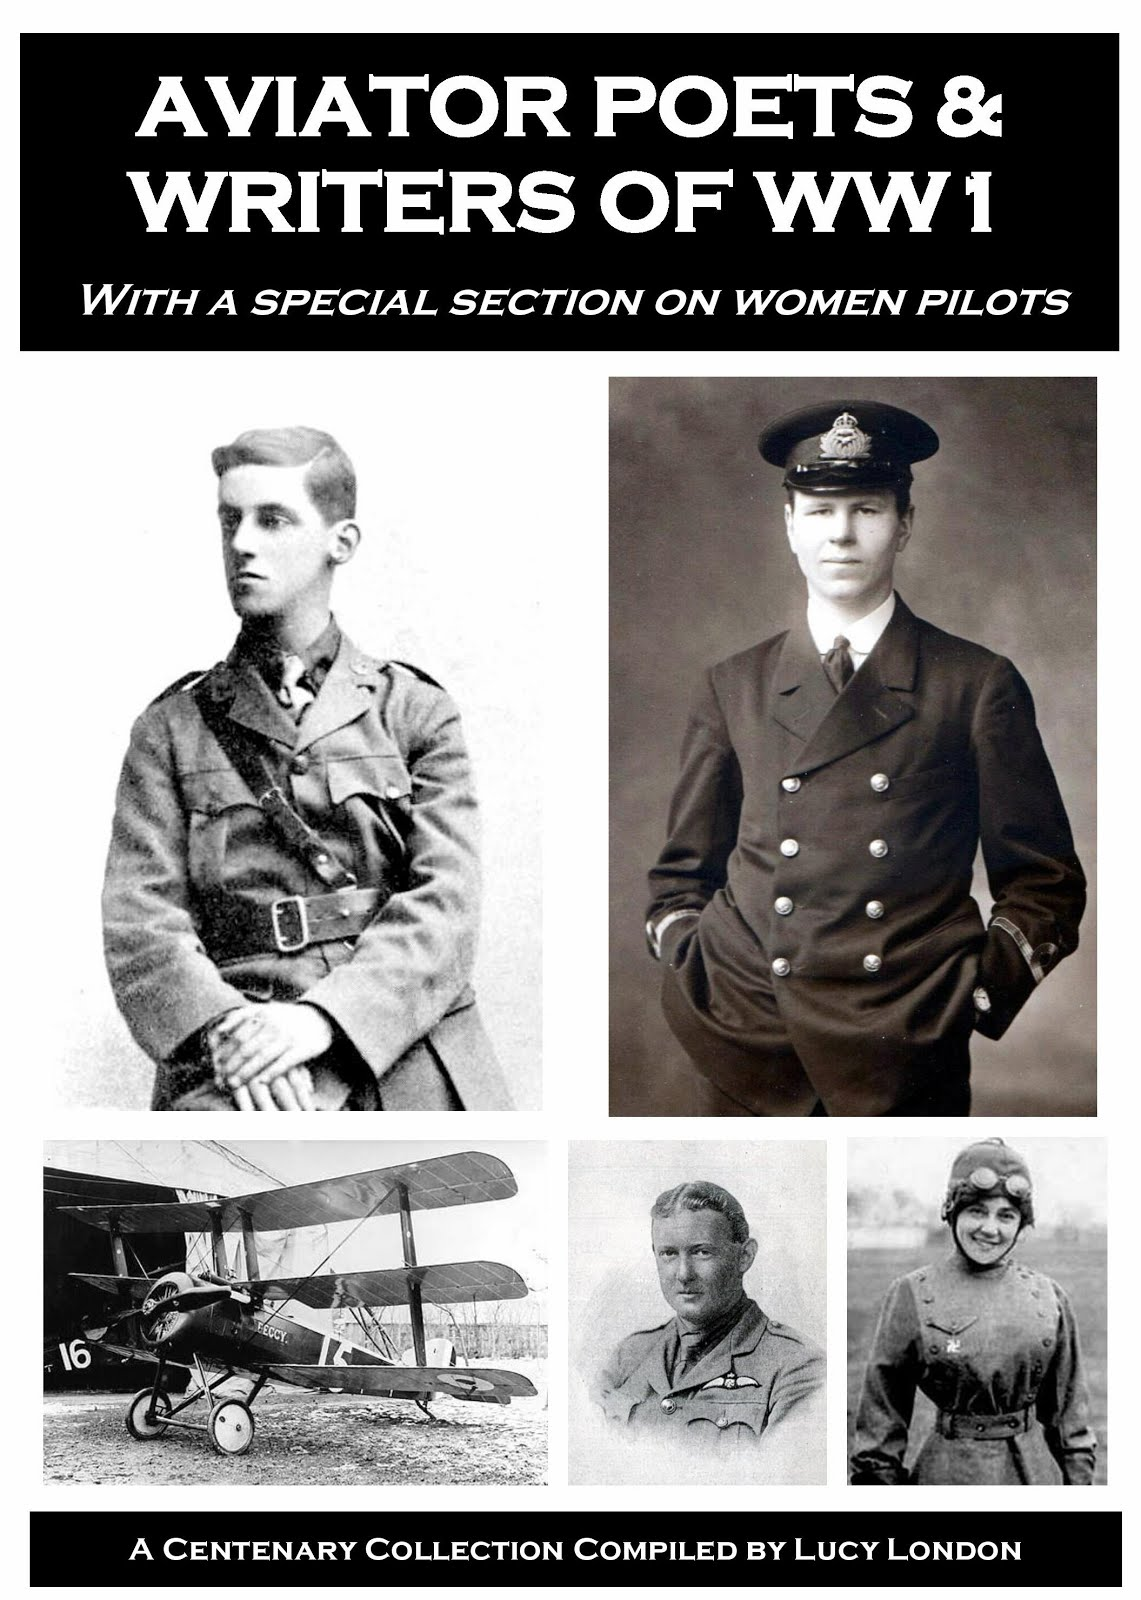 Aviator Poets & Writers of WW1 - new book now available